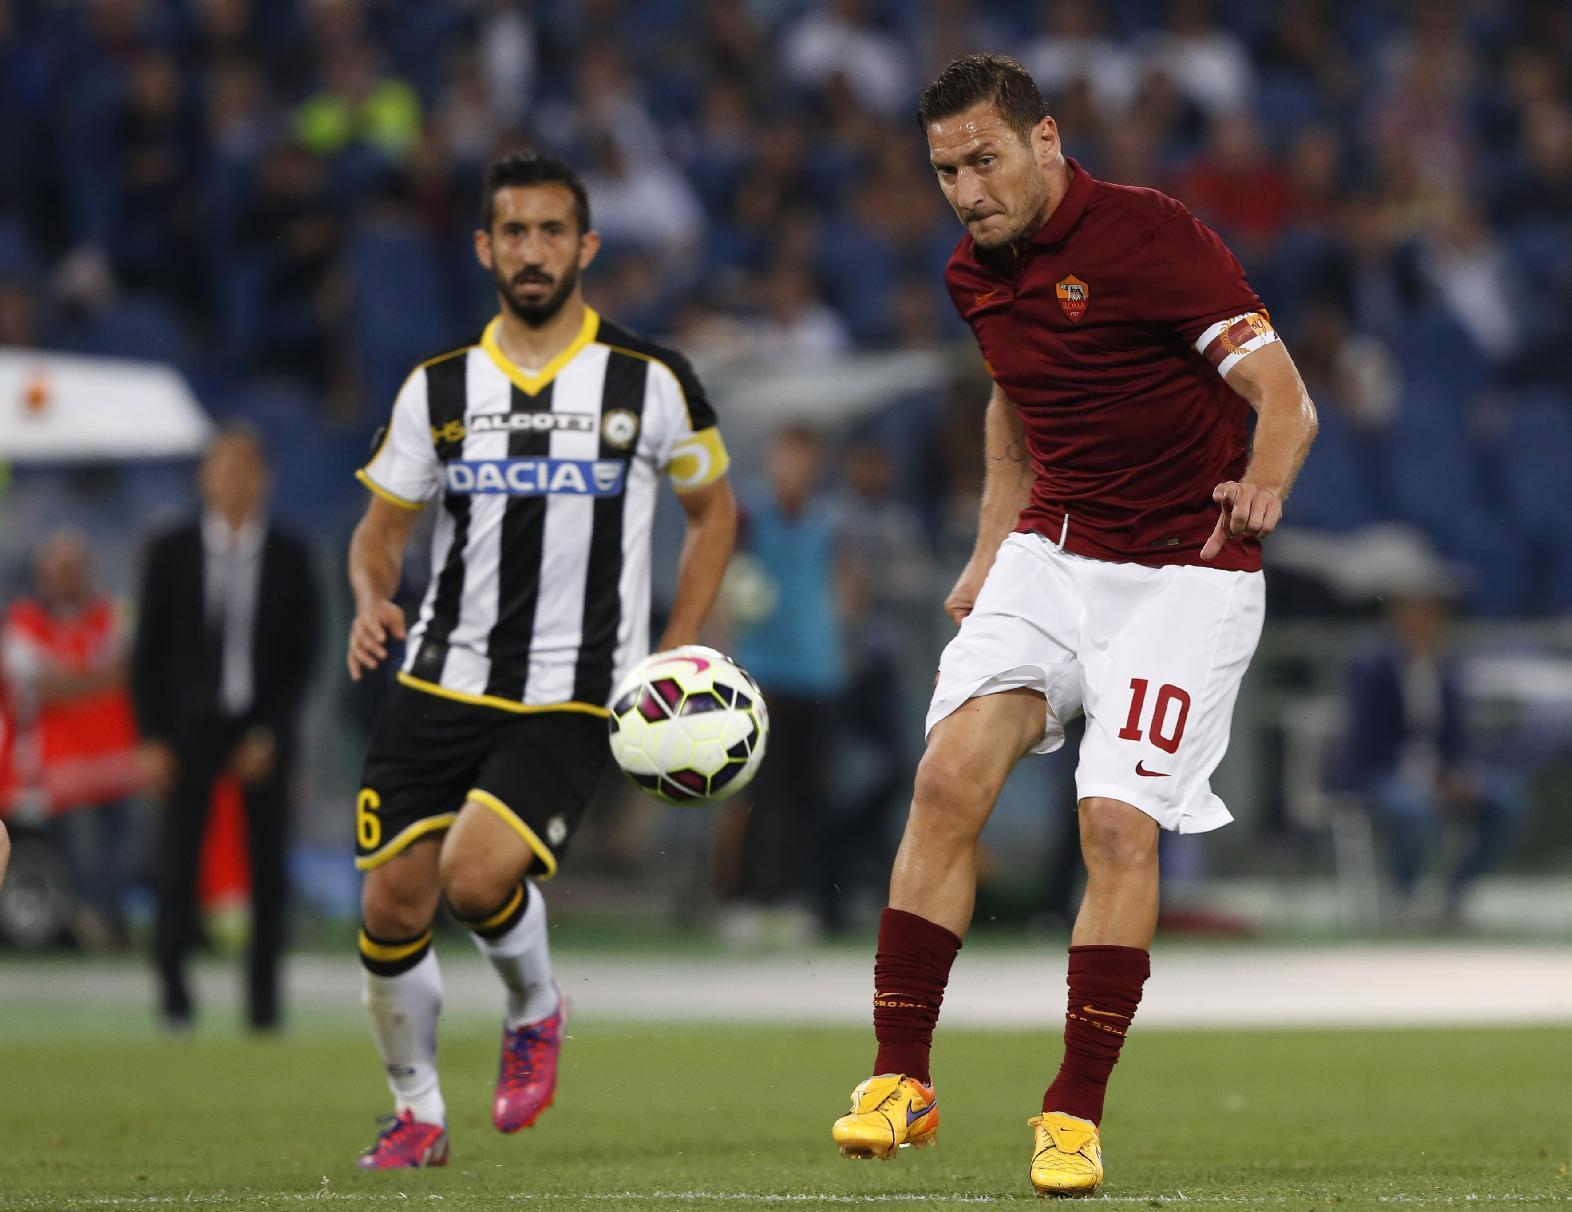 Rome derby is a contest for Champions League entry